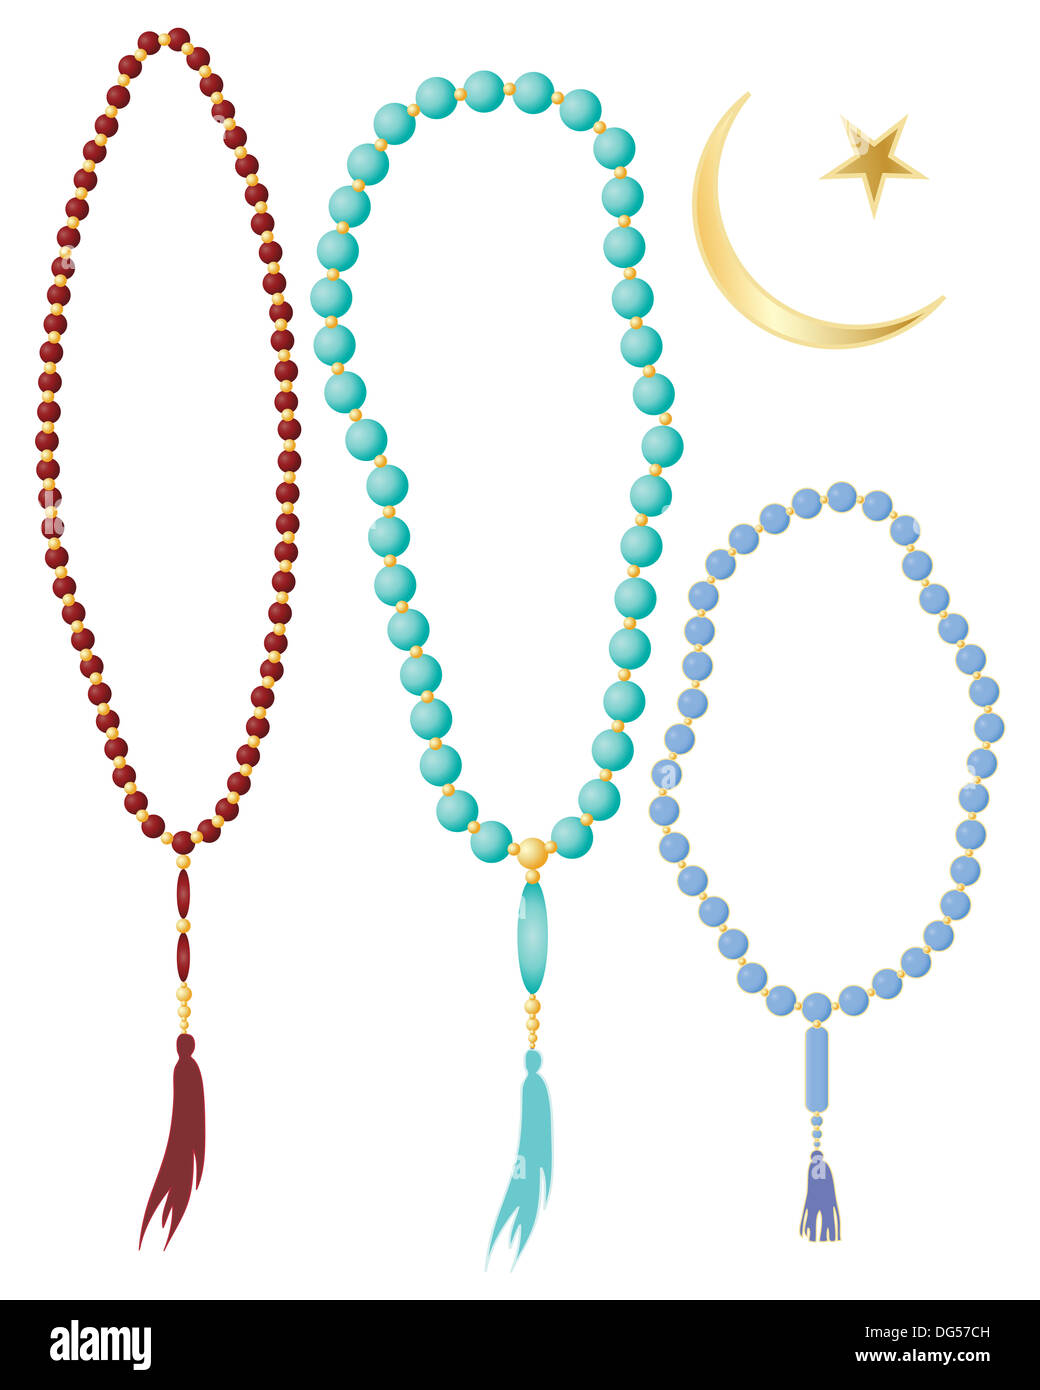 hight resolution of an illustration of islamic prayer beads in different colors with crescent moon symbol isolated on a